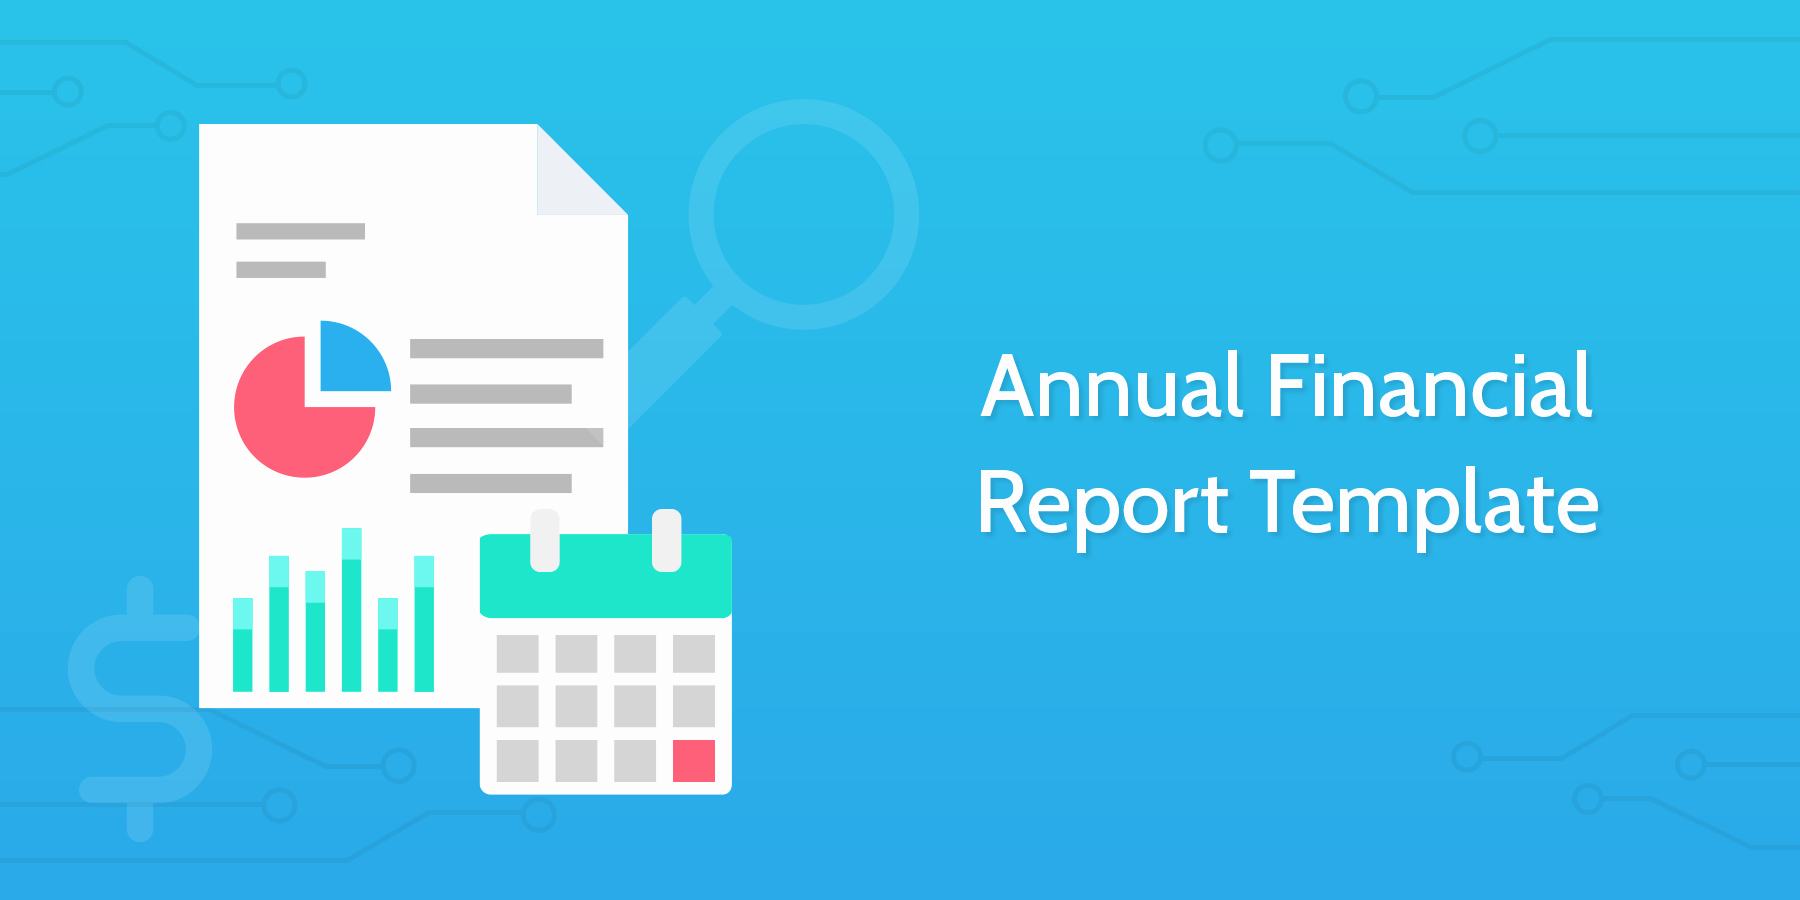 Annual Financial Report Template Beautiful Annual Financial Report Template